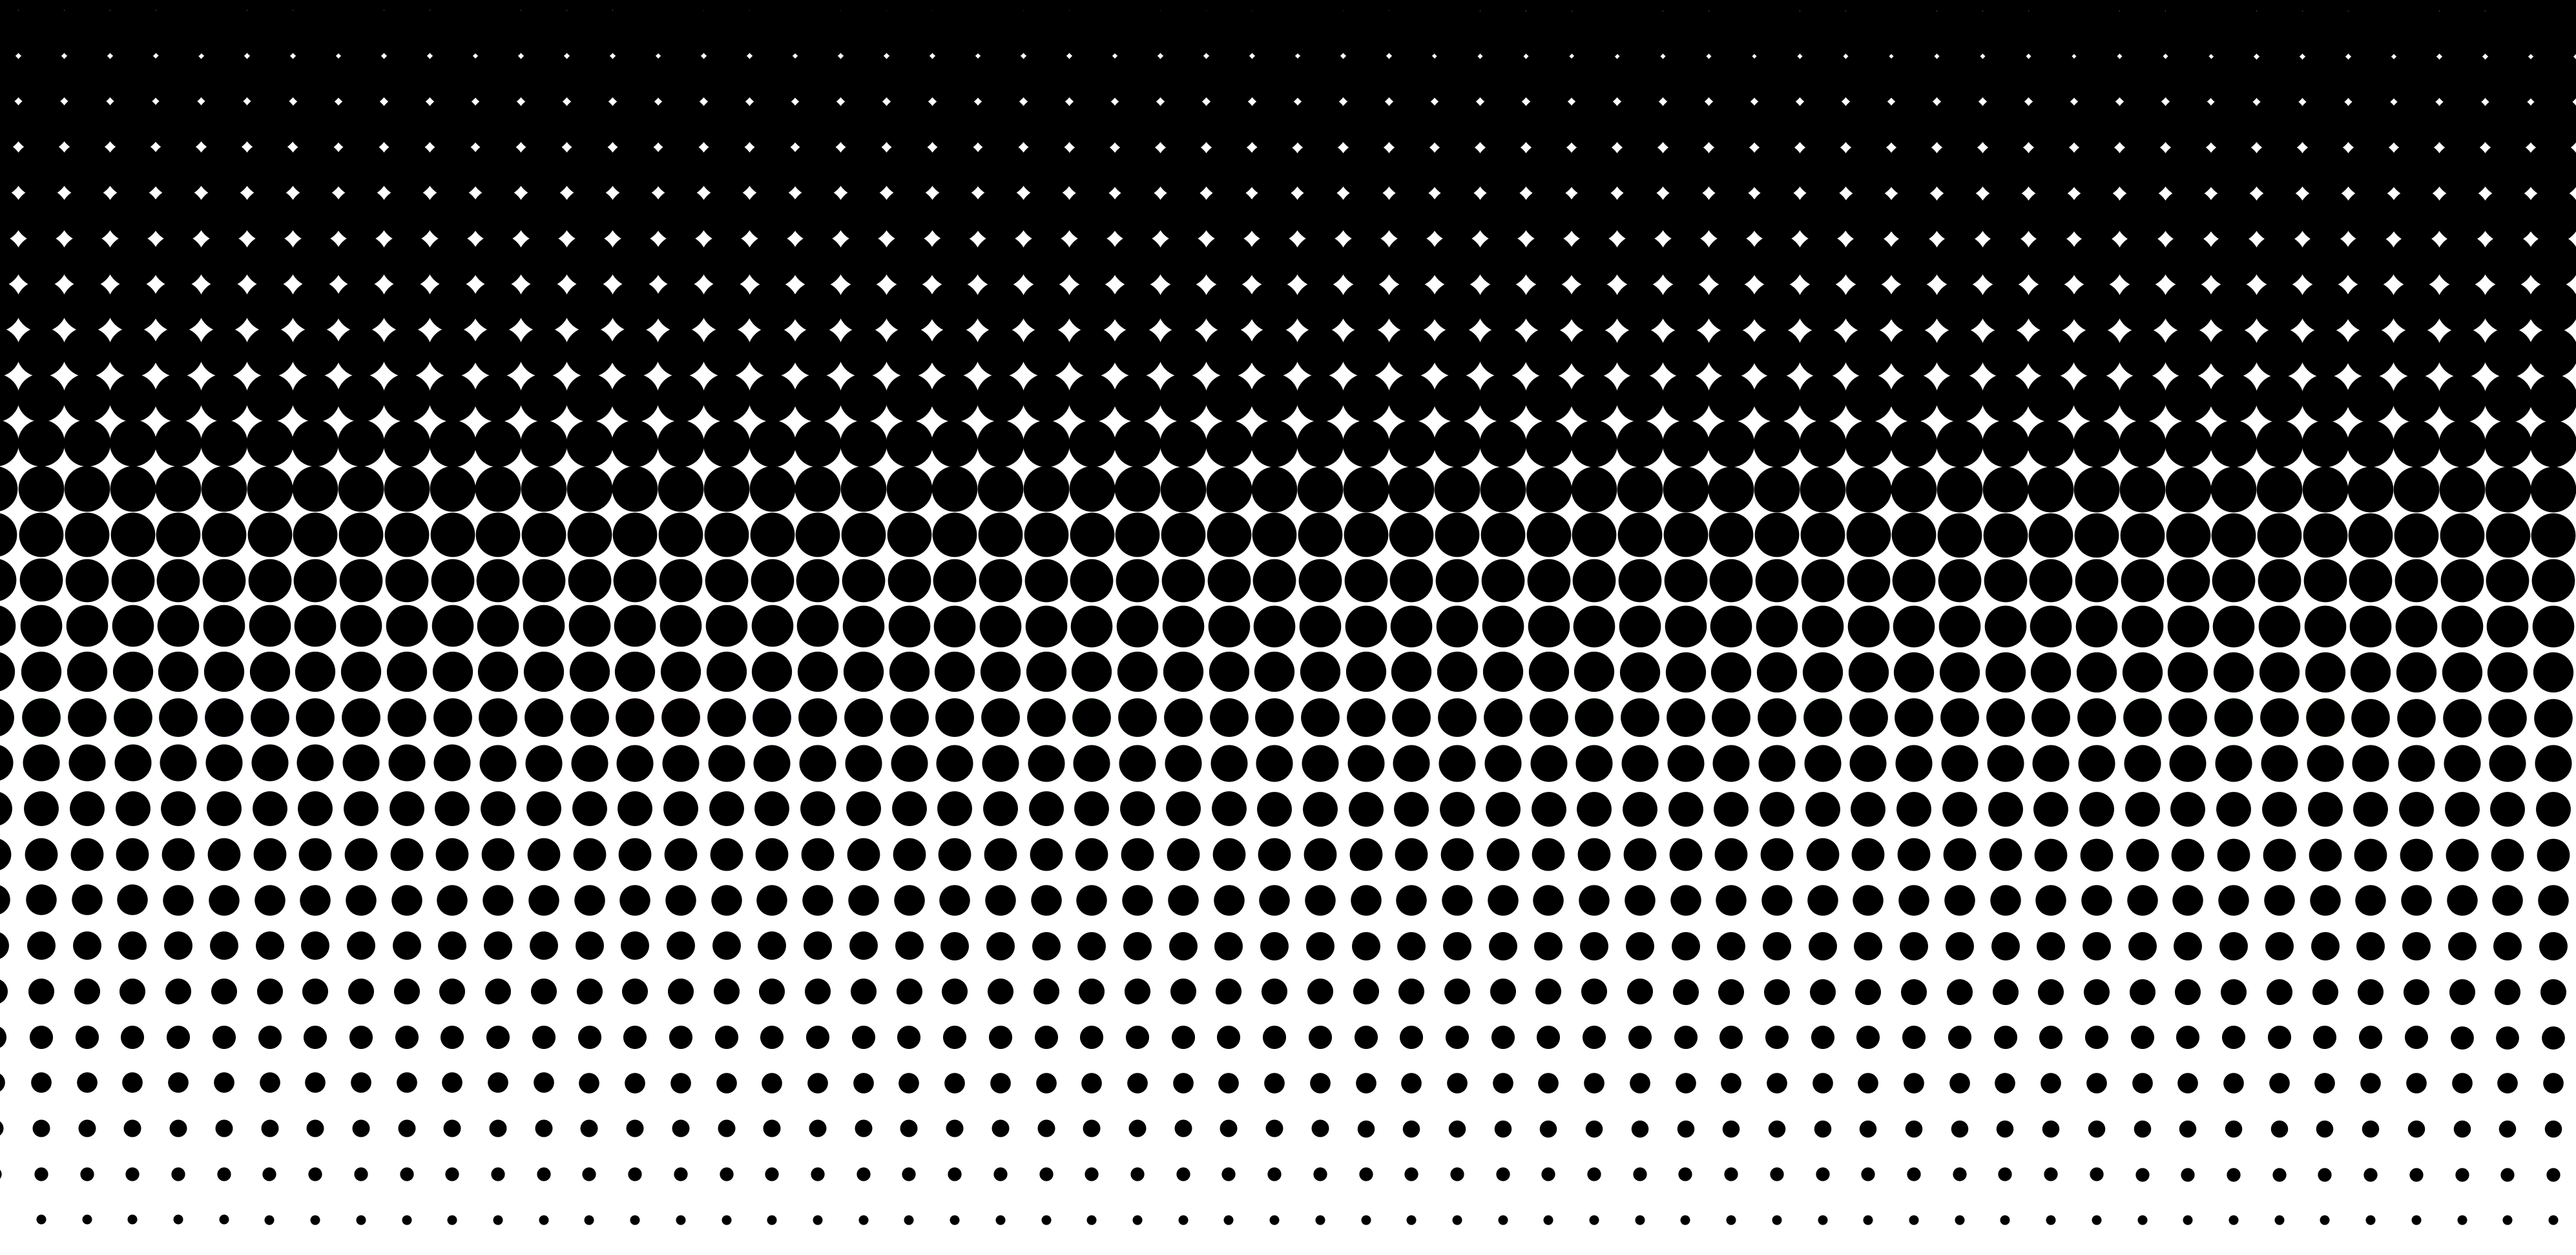 Black and White Halftone Background.